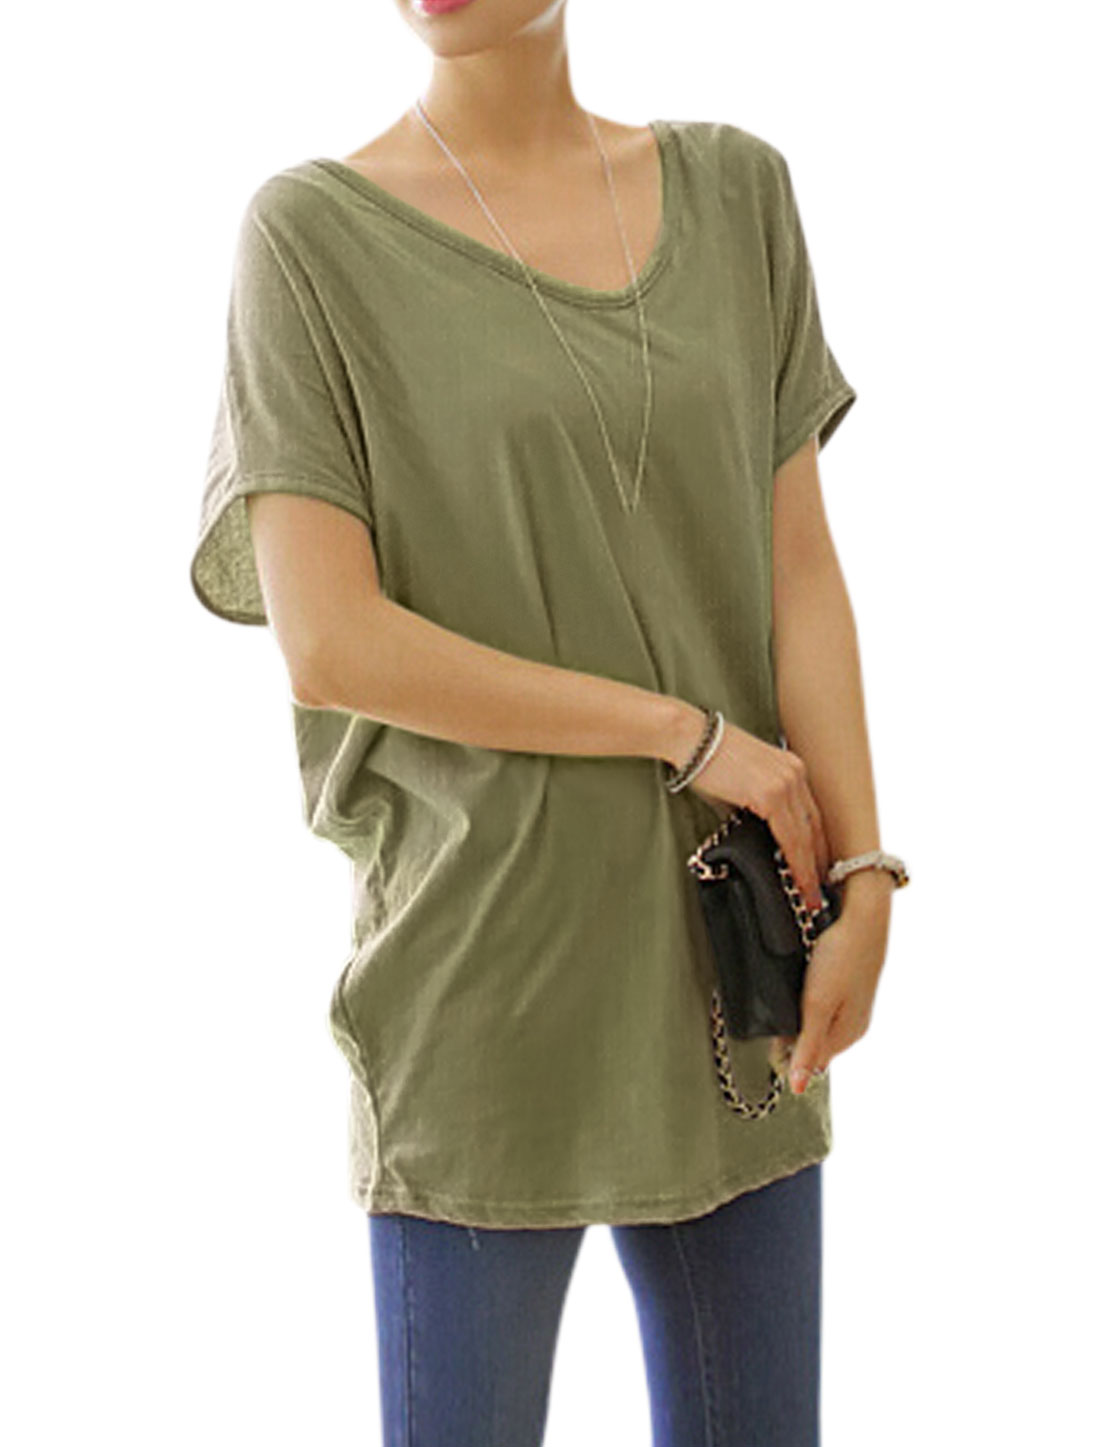 Woman Crochet Design Back Scoop Neck Short Sleeves Tunic Top Army Green XS